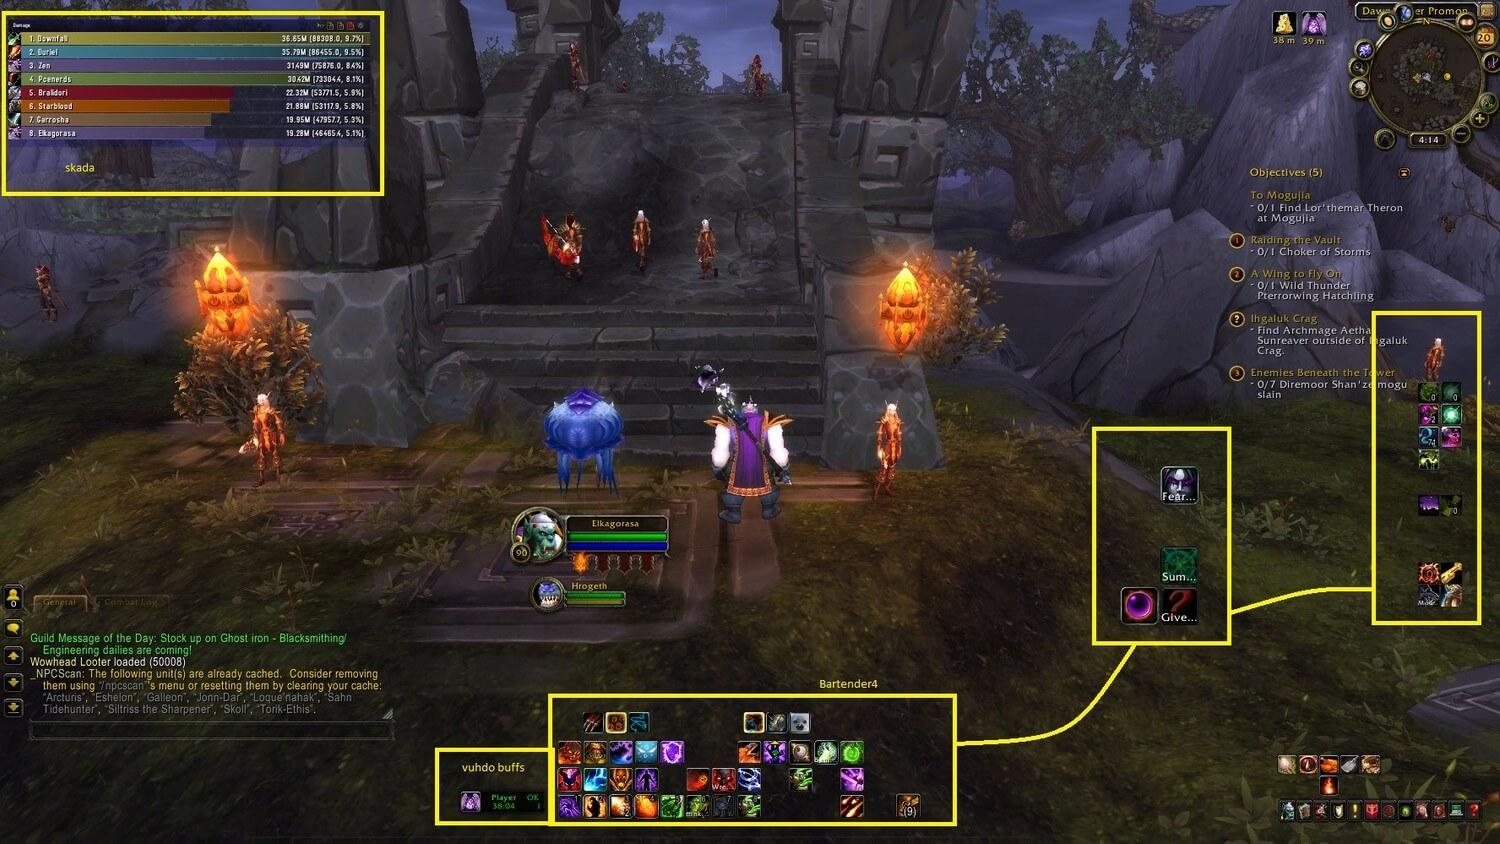 Best addons for WoW | More than 10 | Cheap - Buy & Sell